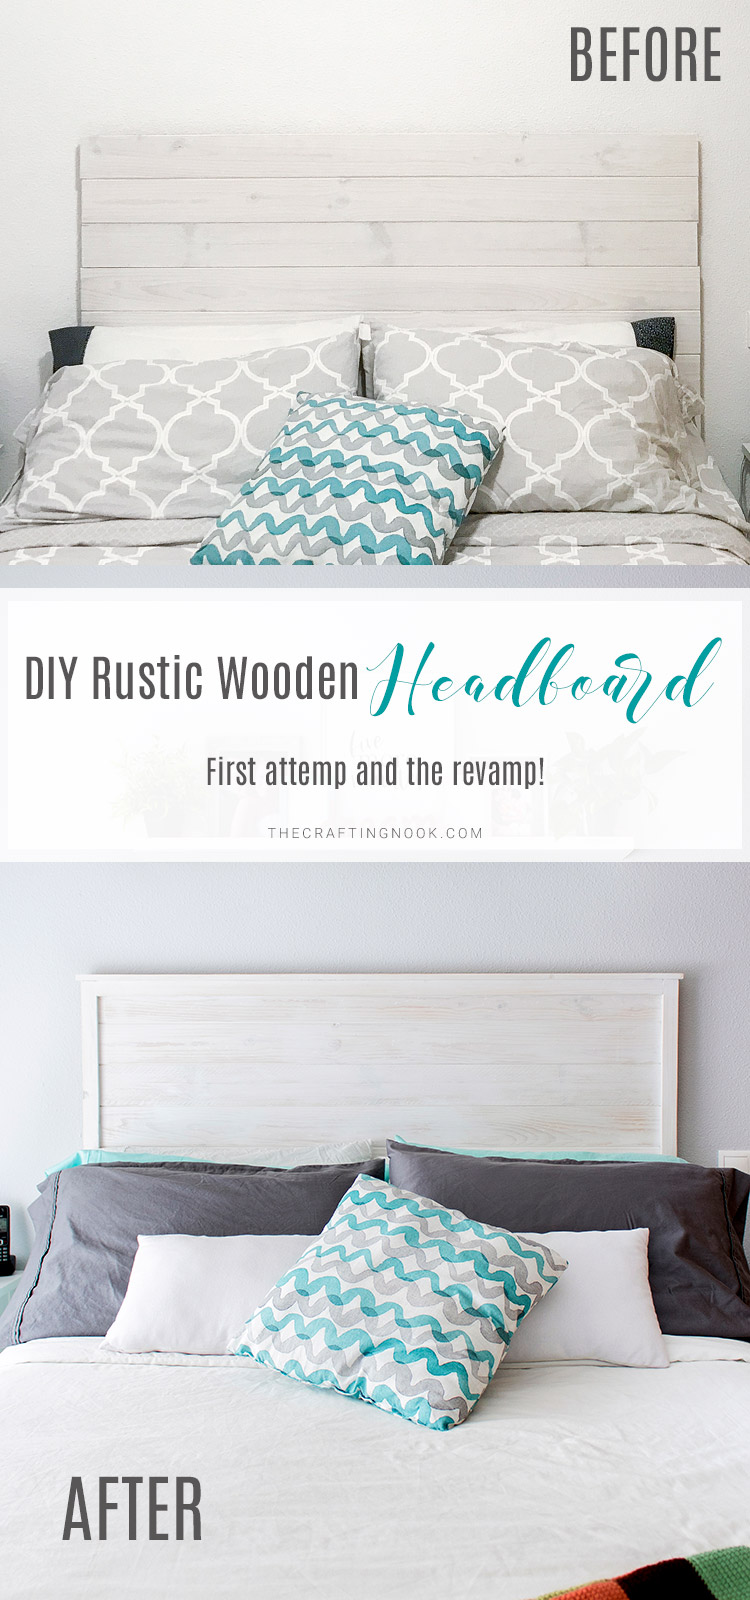 Diy Rustic Wooden Headboard The Crafting Nook